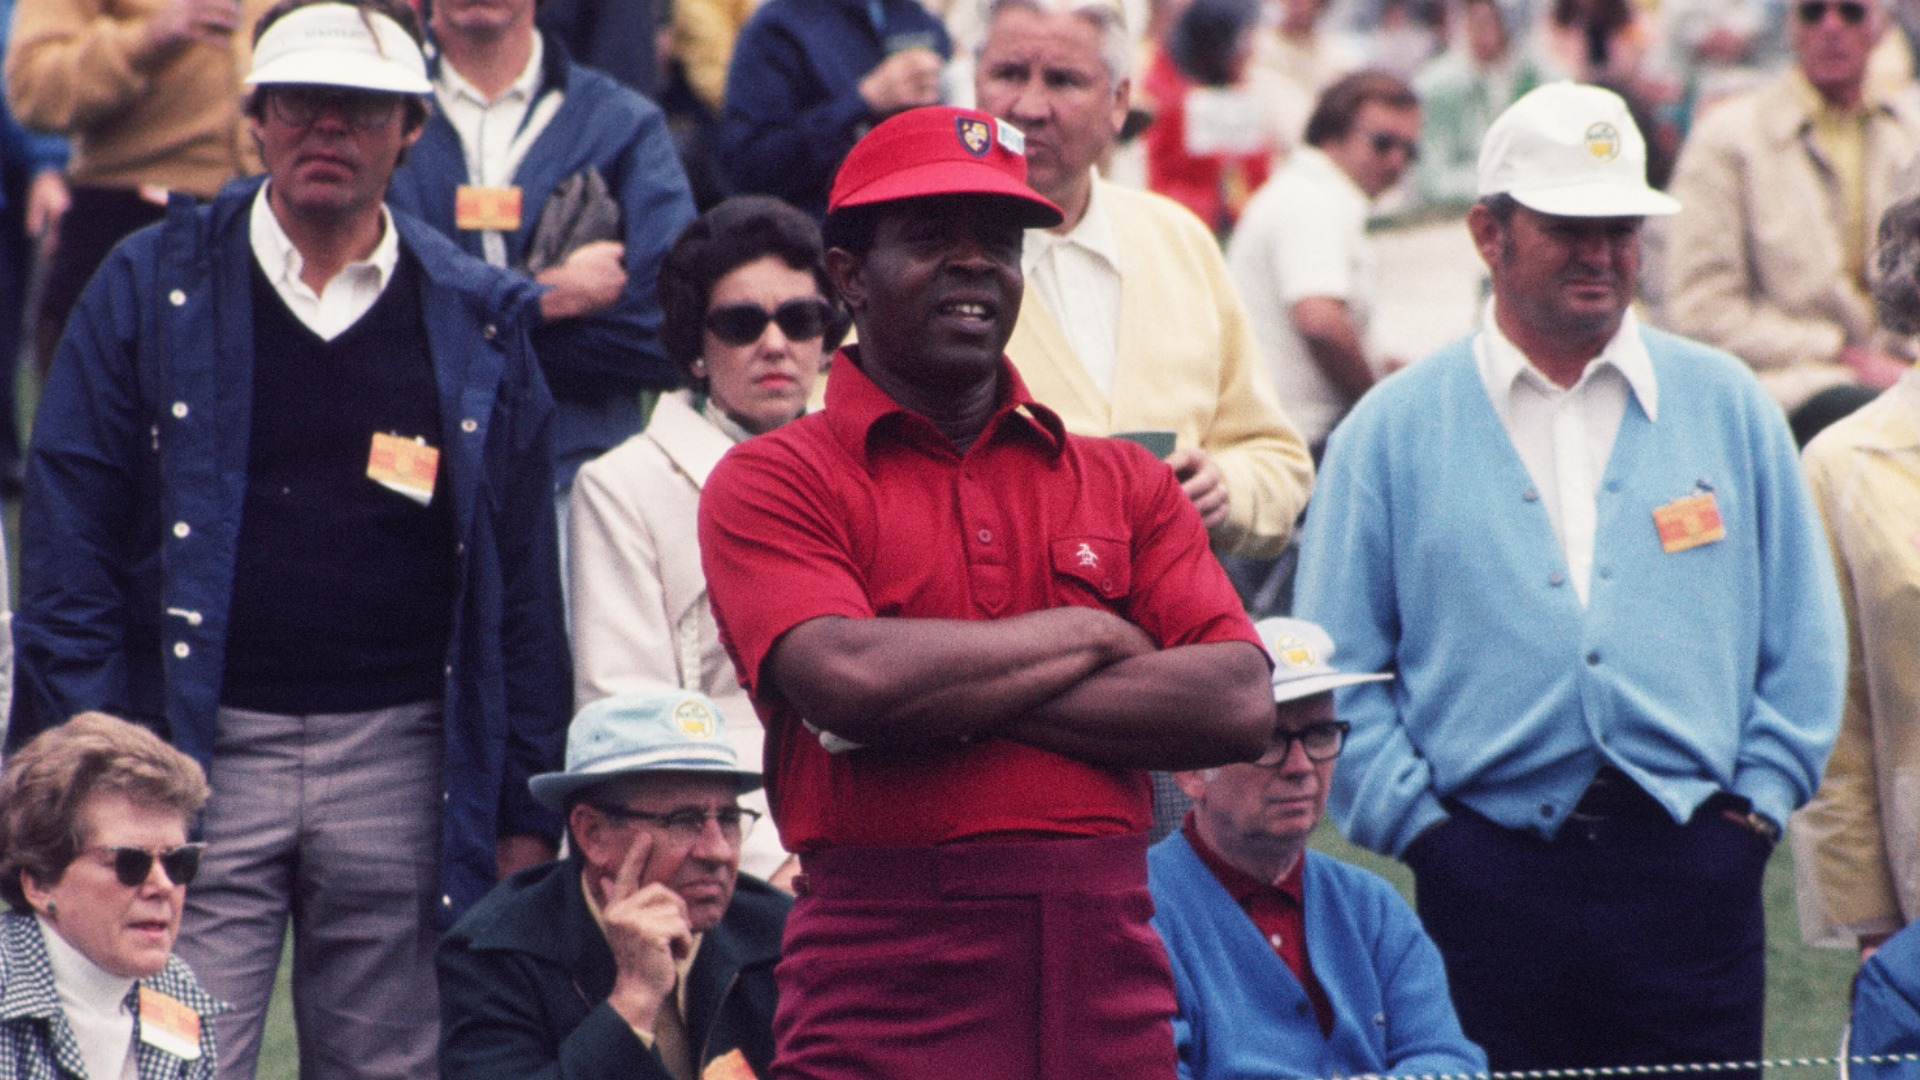 In news welcomed by Tiger Woods, Augusta has honoured Lee Elder, who will now return to the Masters next year.